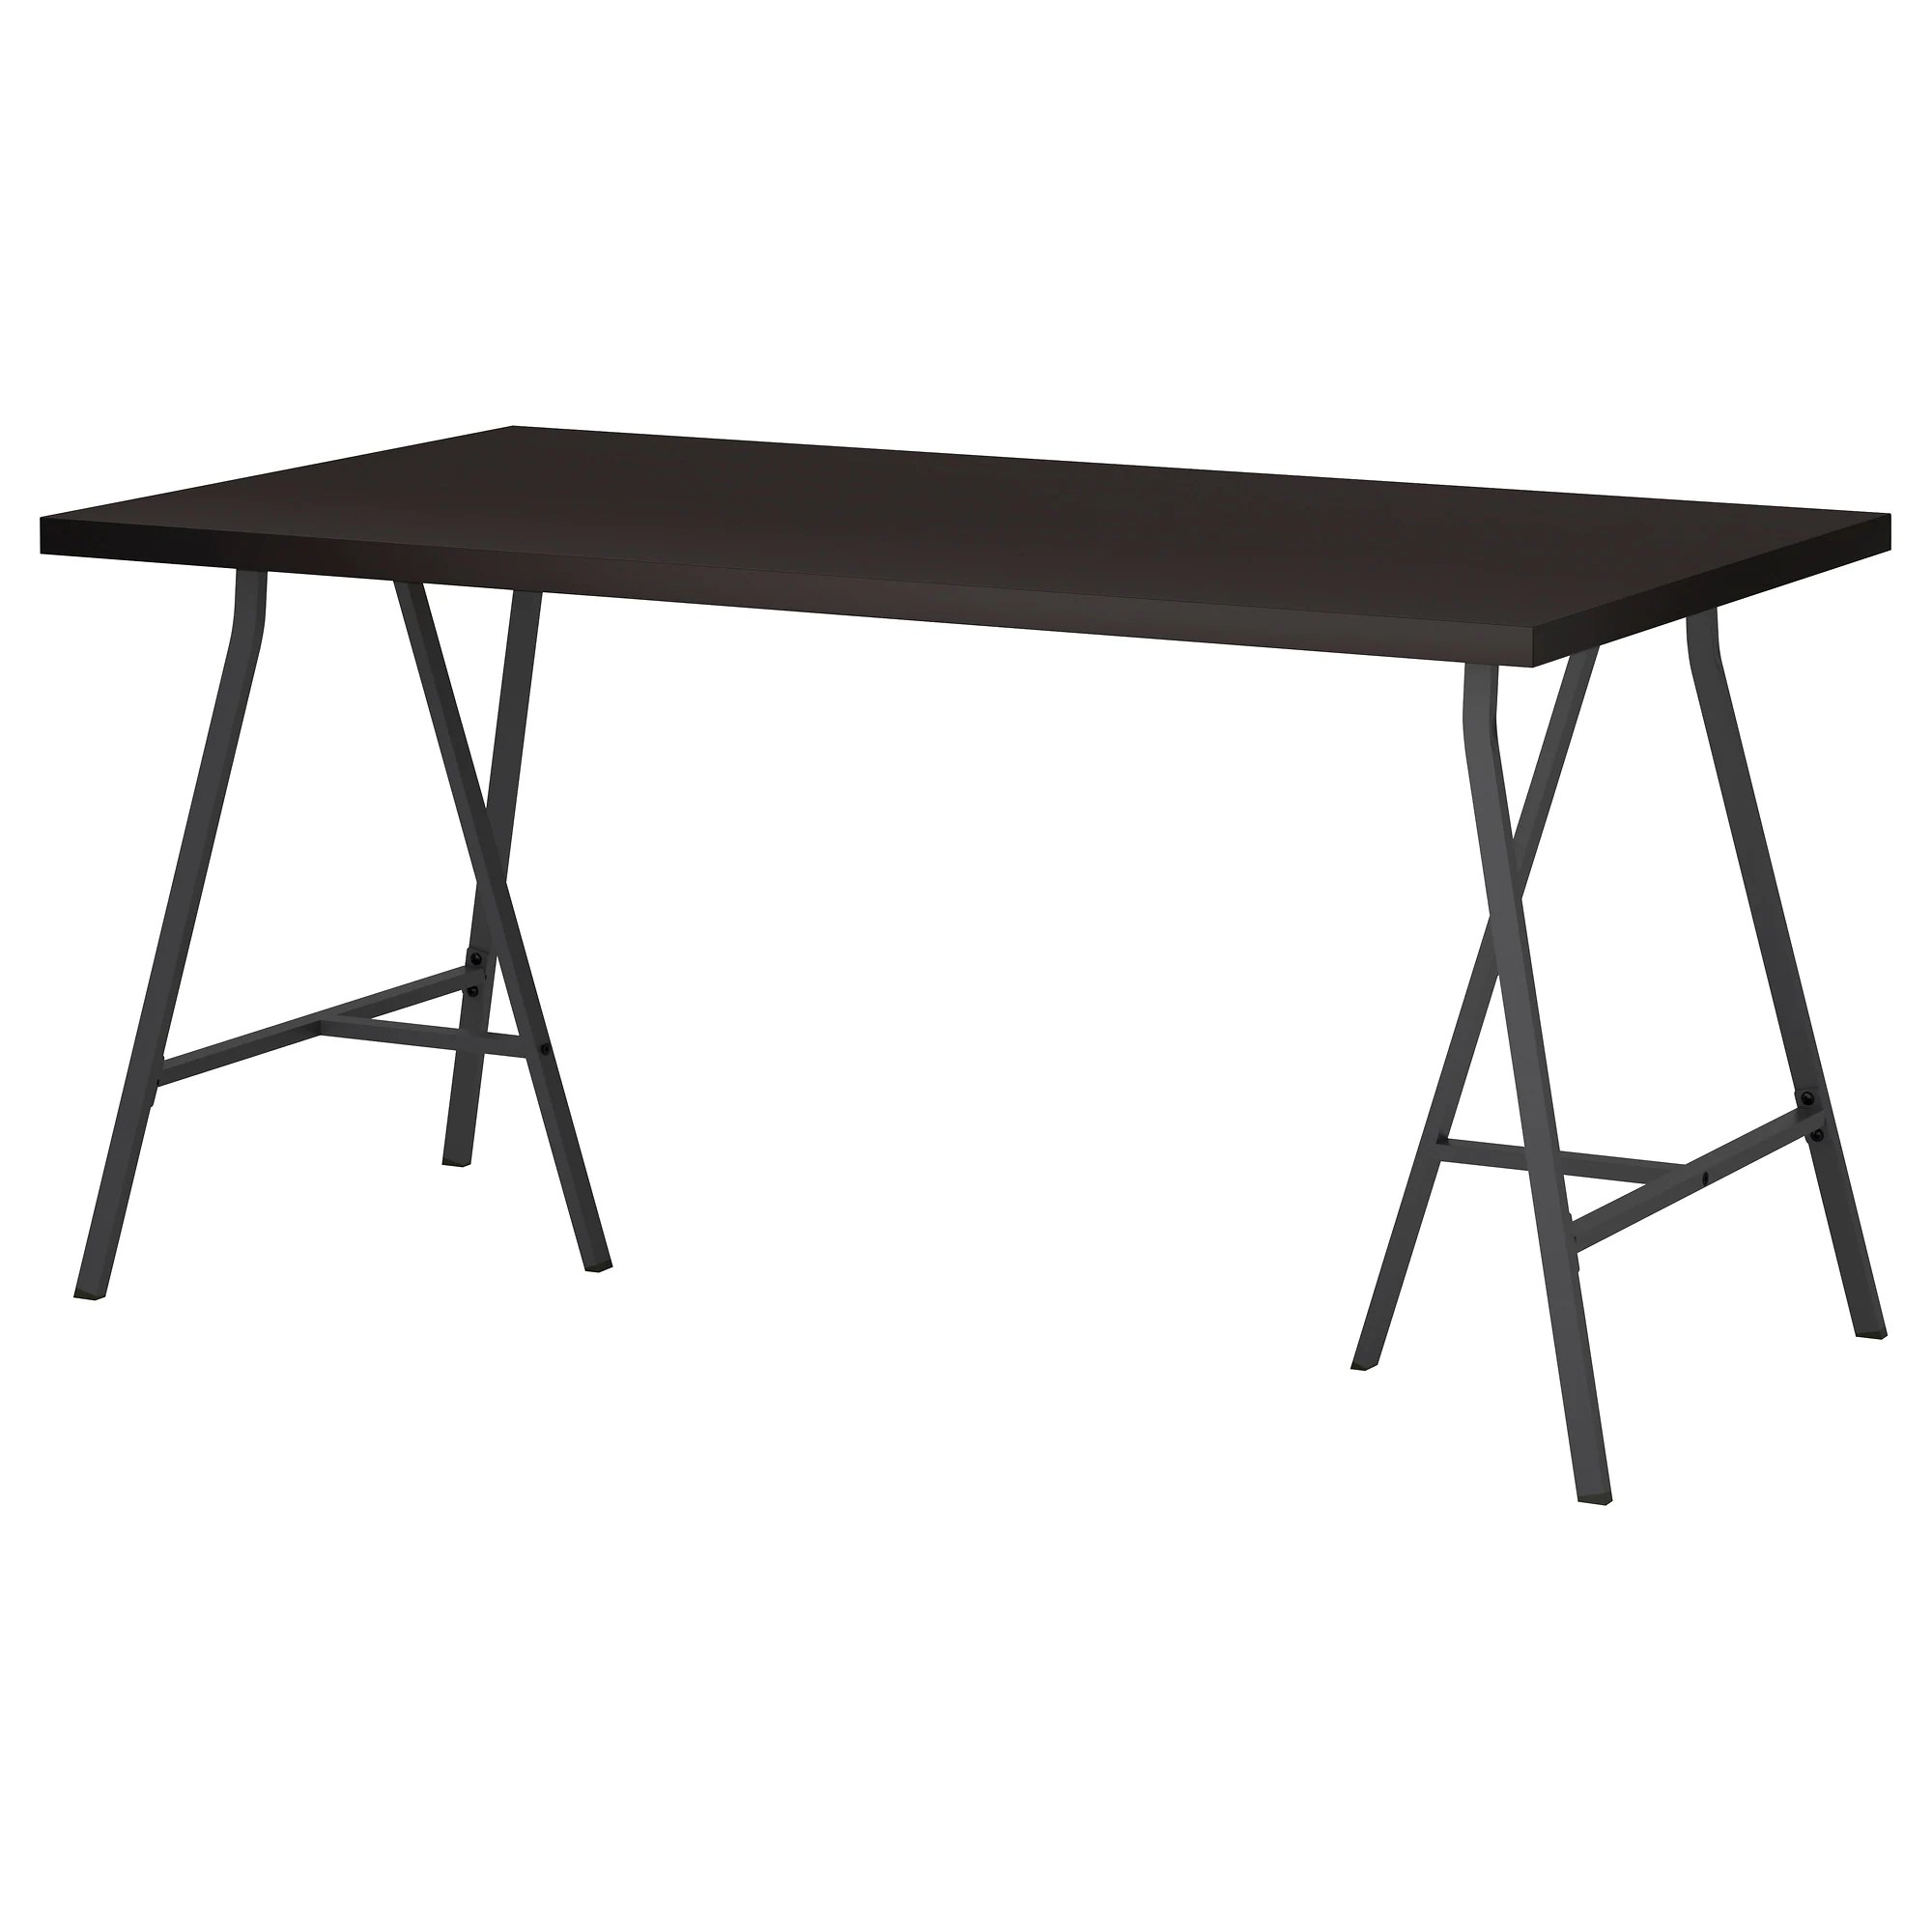 Ikea Table Linnmon Lerberg Table Black Brown Gray